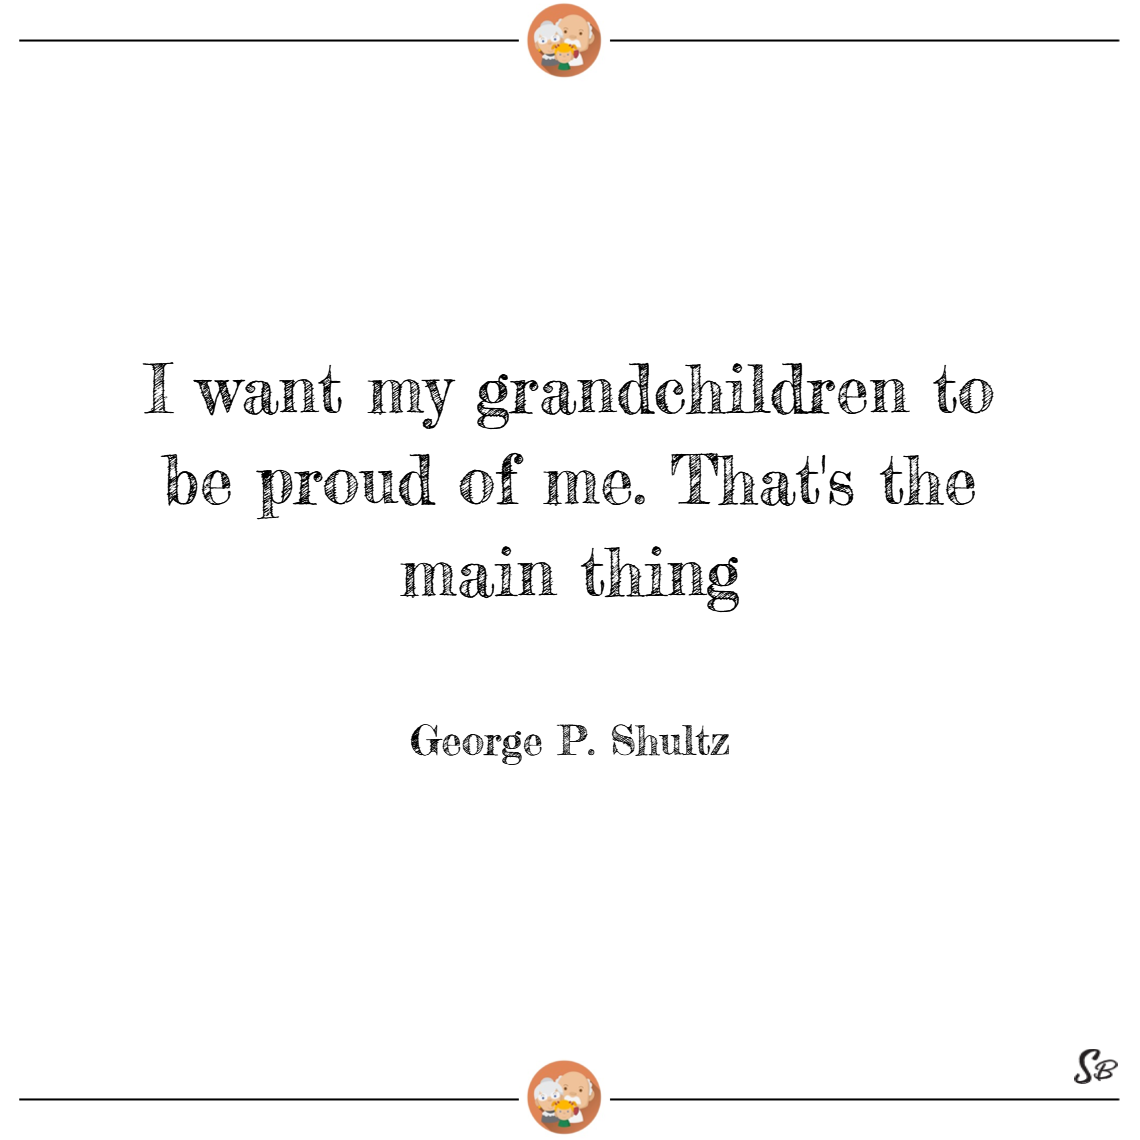 I want my grandchildren to be proud of me. that's the main thing. – george p. shultz